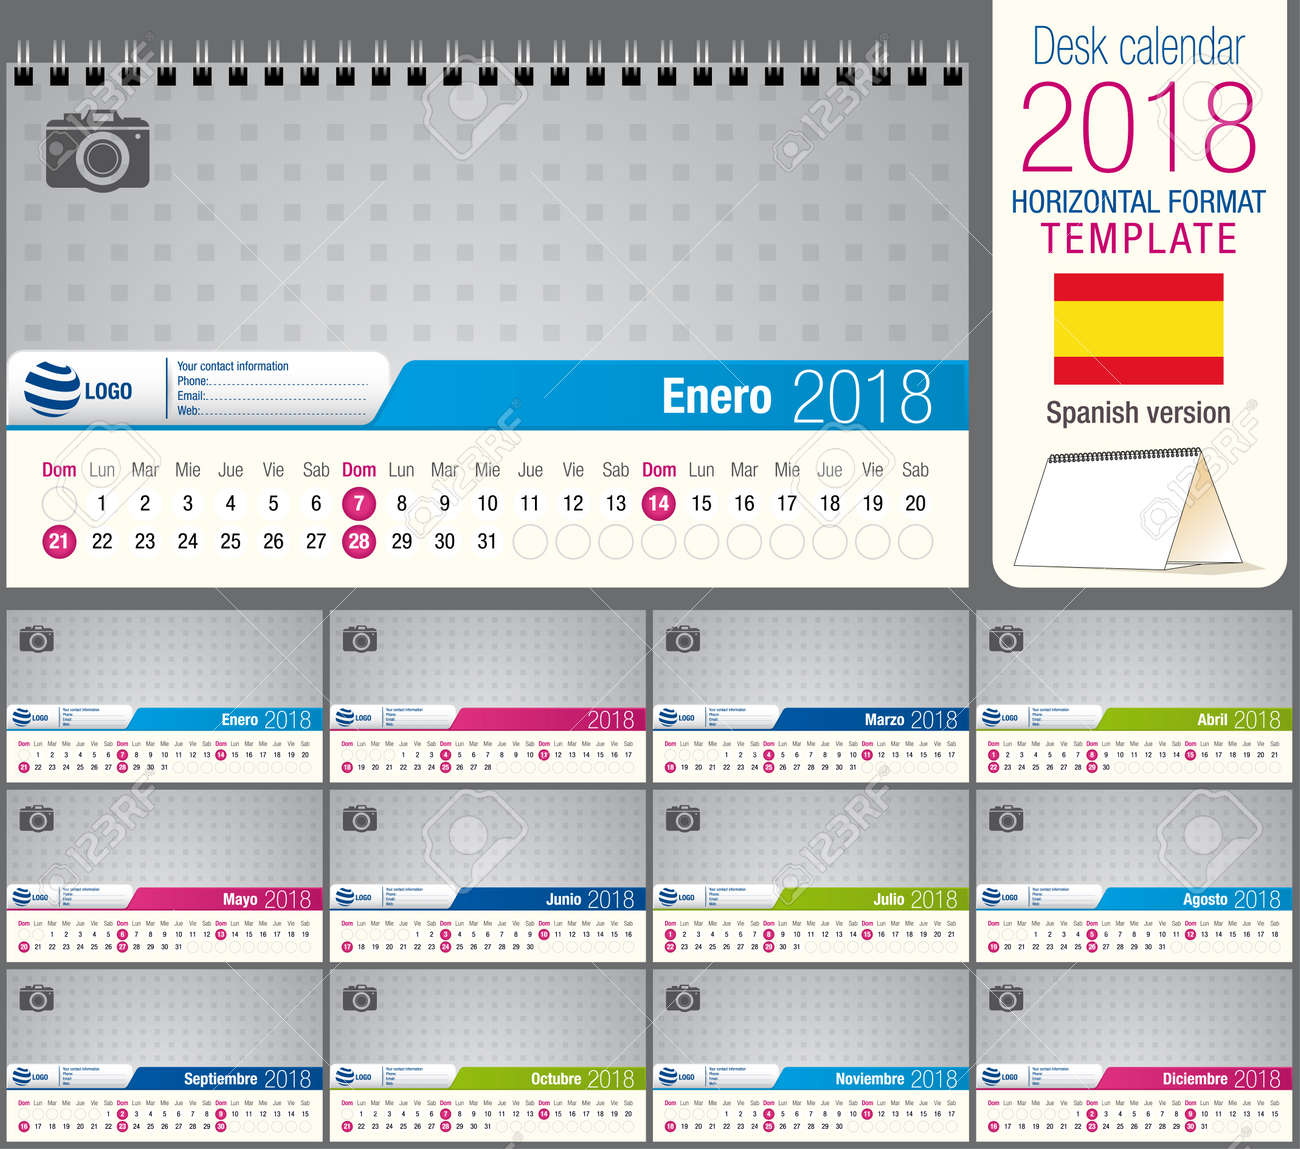 Useful Desk Triangle Calendar 2018 Template, Ready For Printing ...